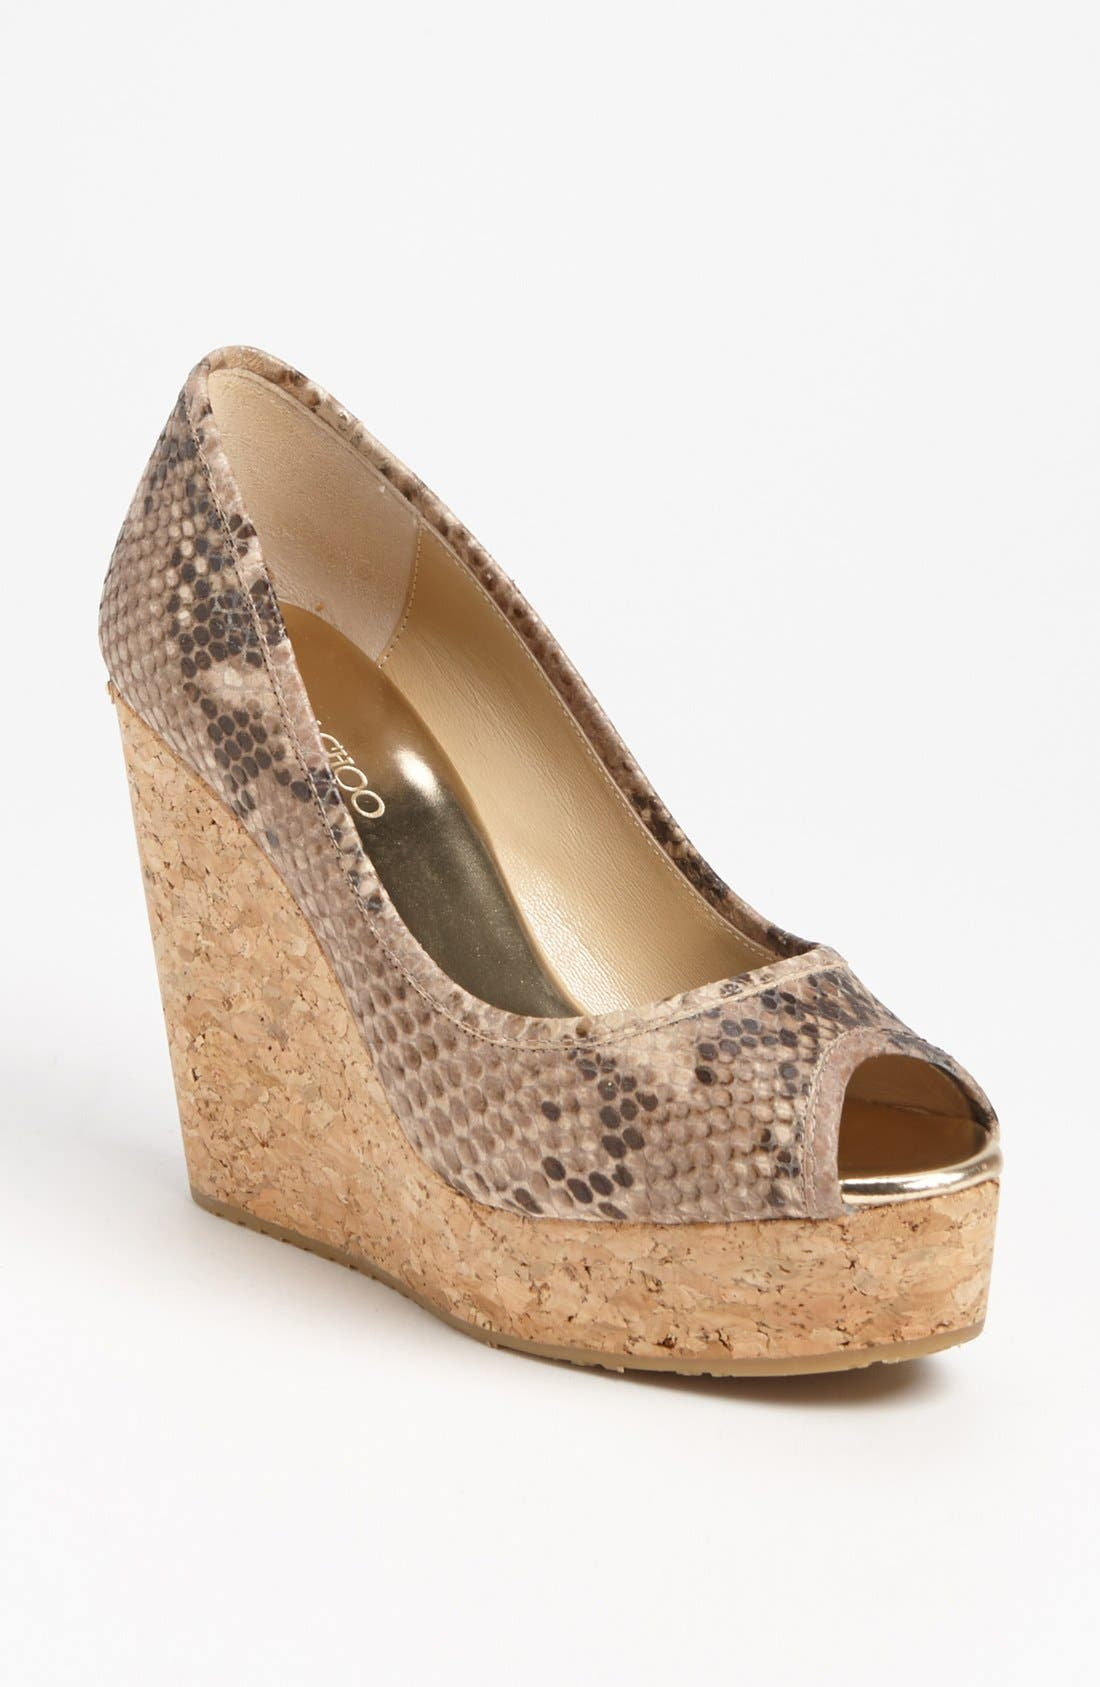 Alternate Image 1 Selected - Jimmy Choo 'Papina' Cork Wedge Pump